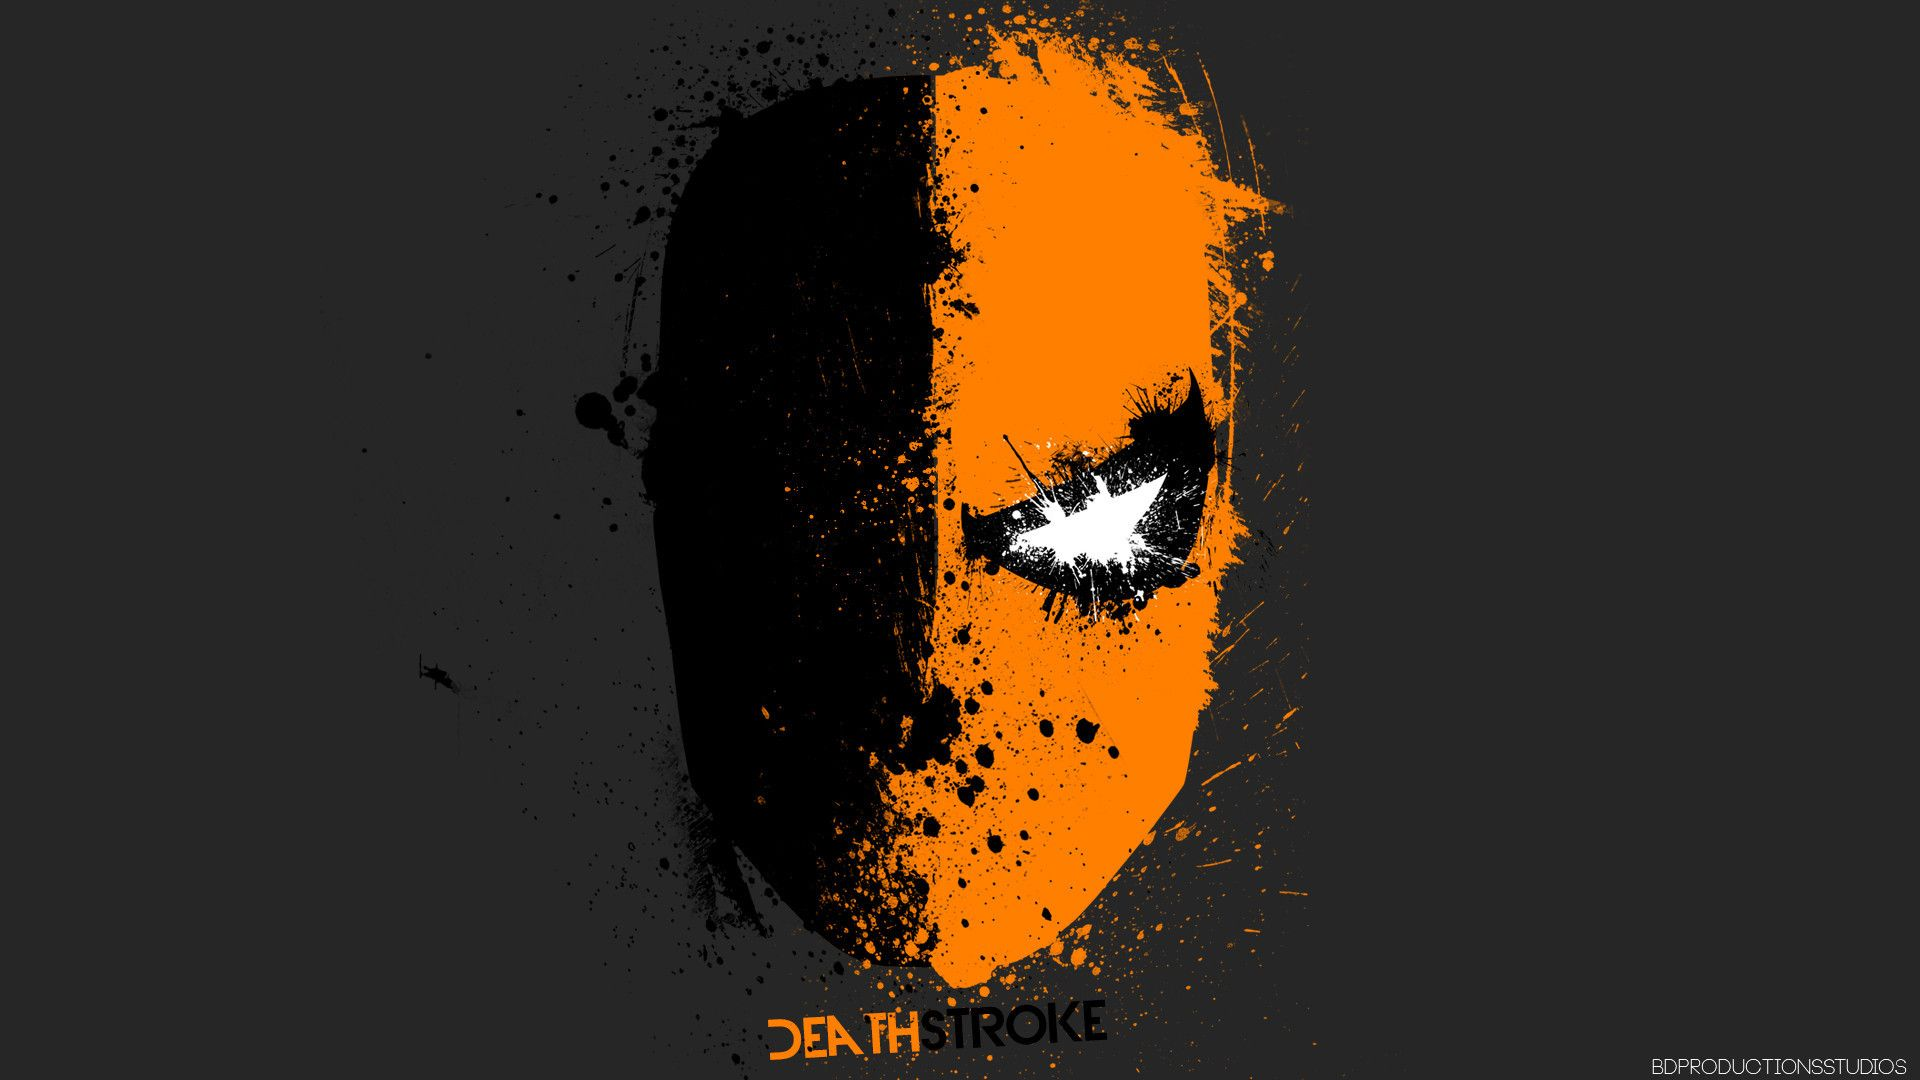 Cool Deathstroke Wallpapers Top Free Cool Deathstroke